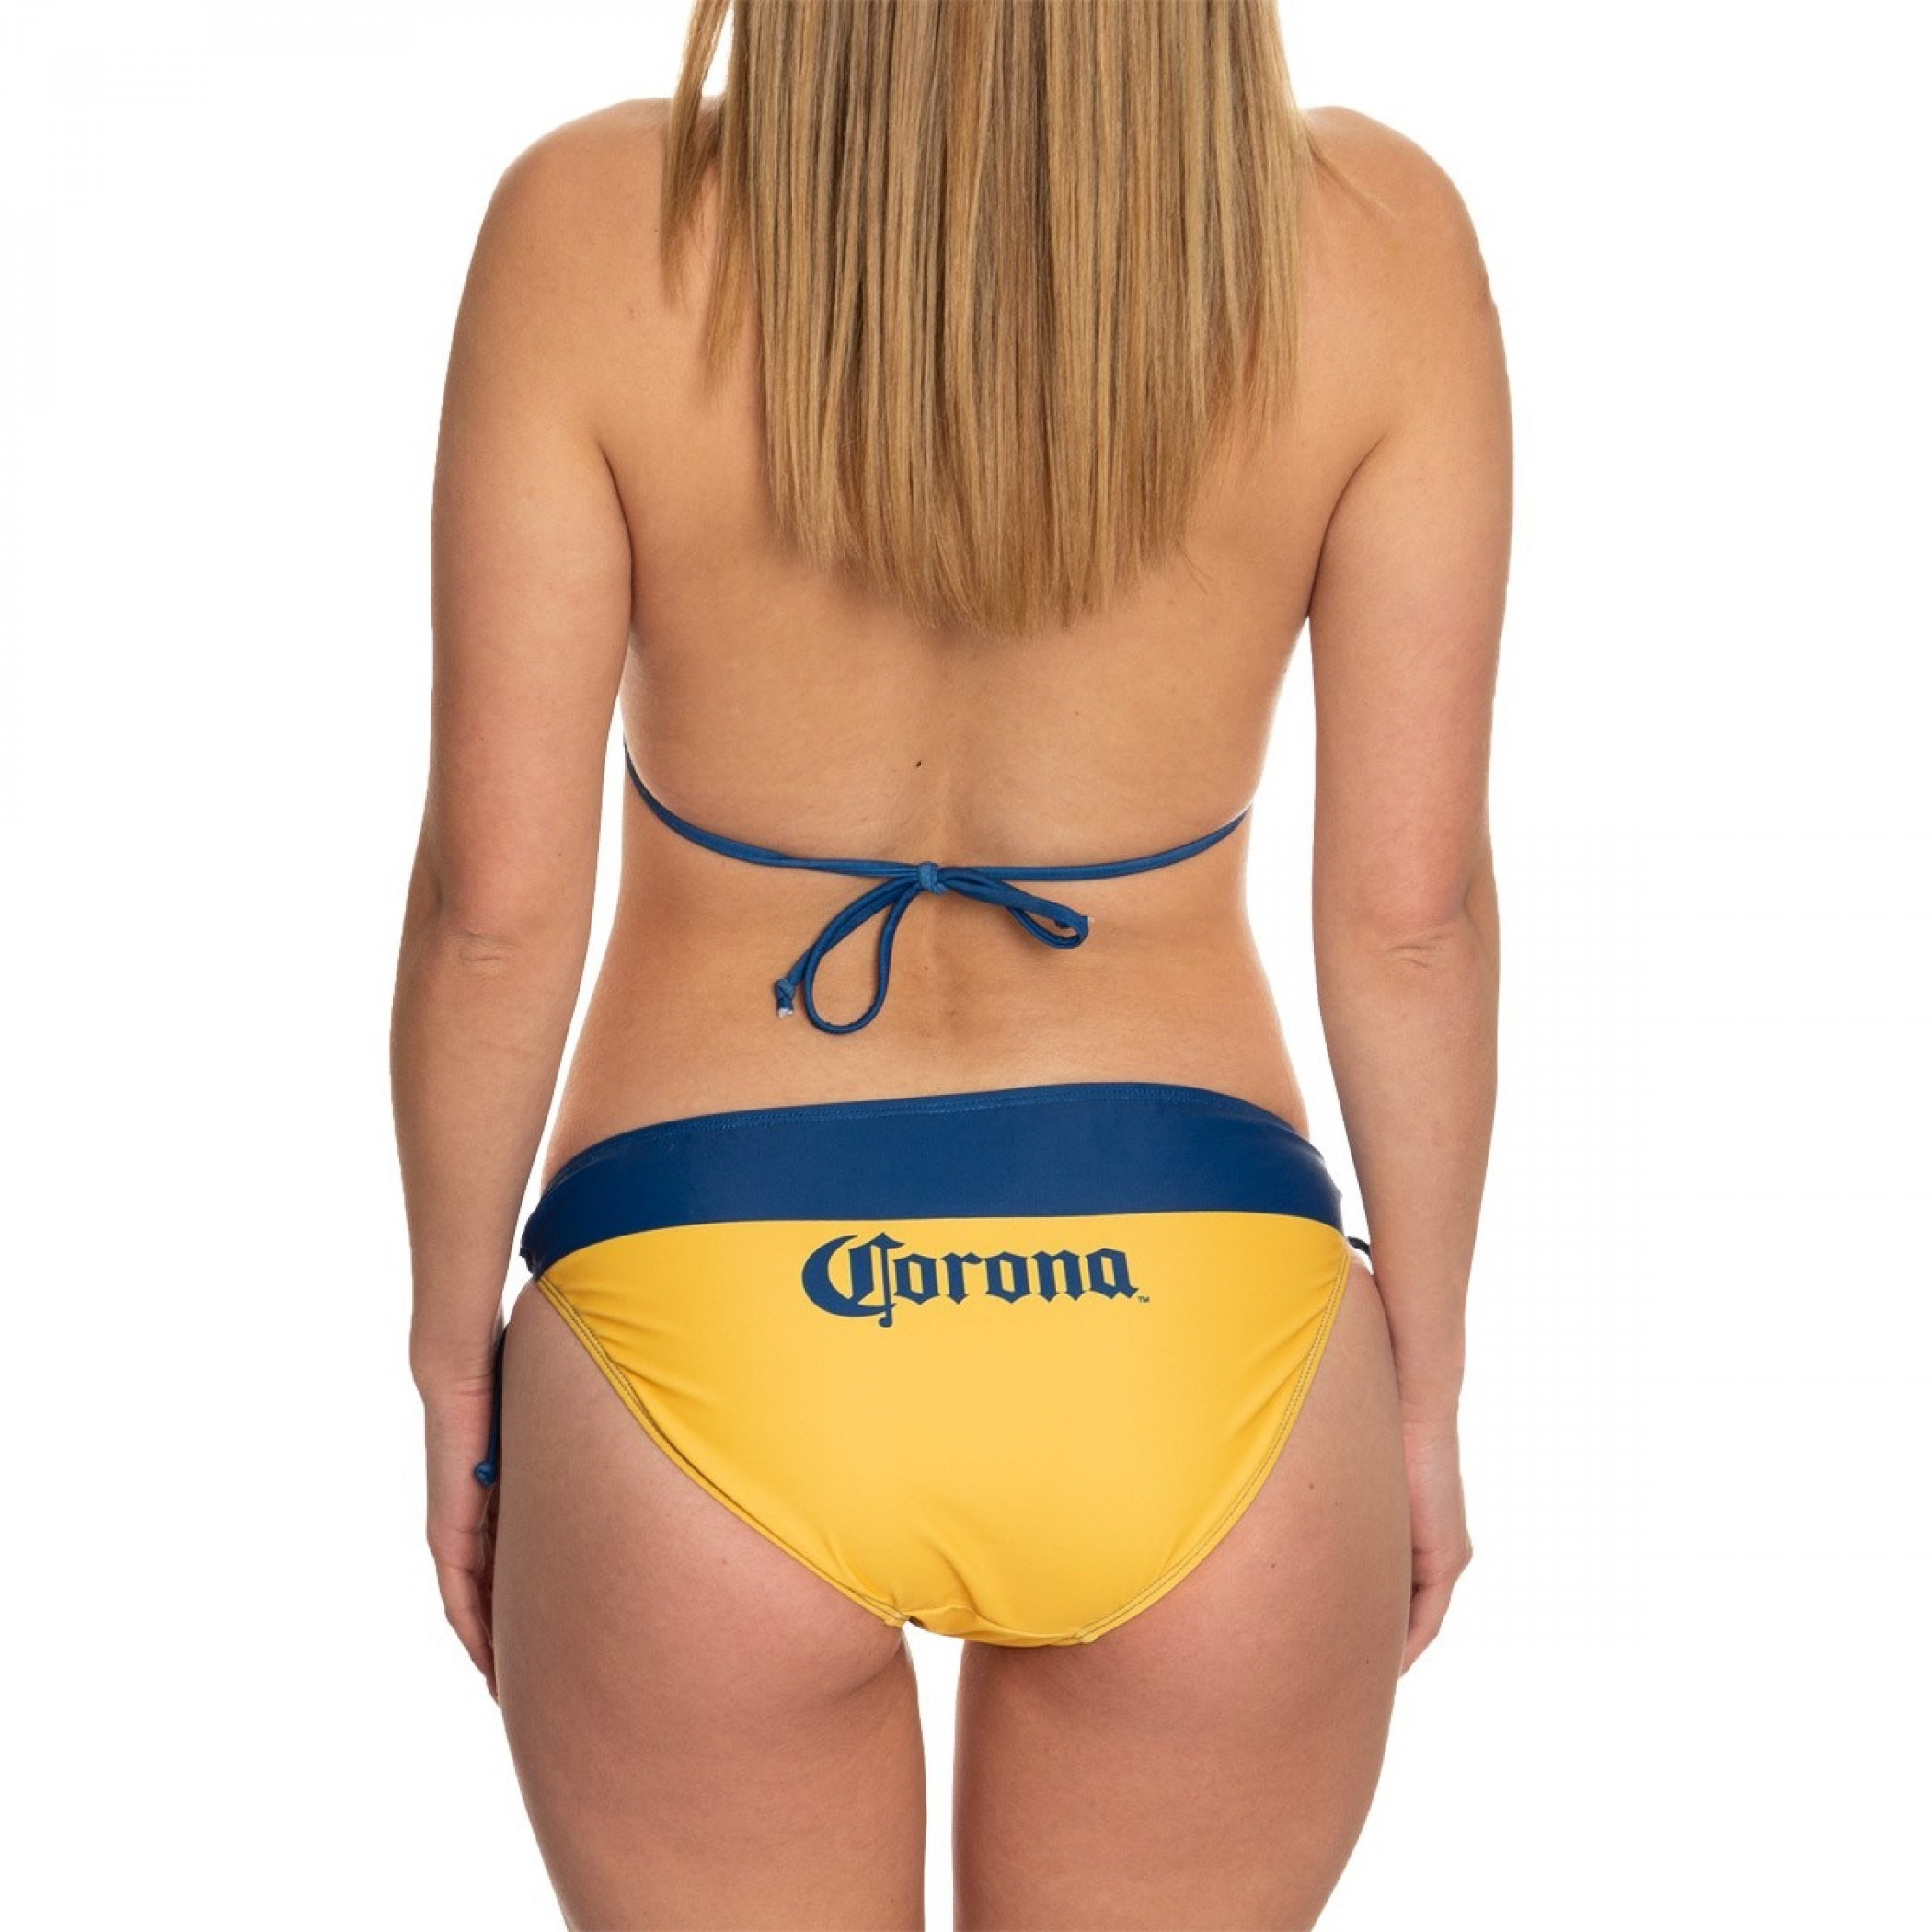 Corona Extra Navy Embroidered Gold Bikini Swimsuit